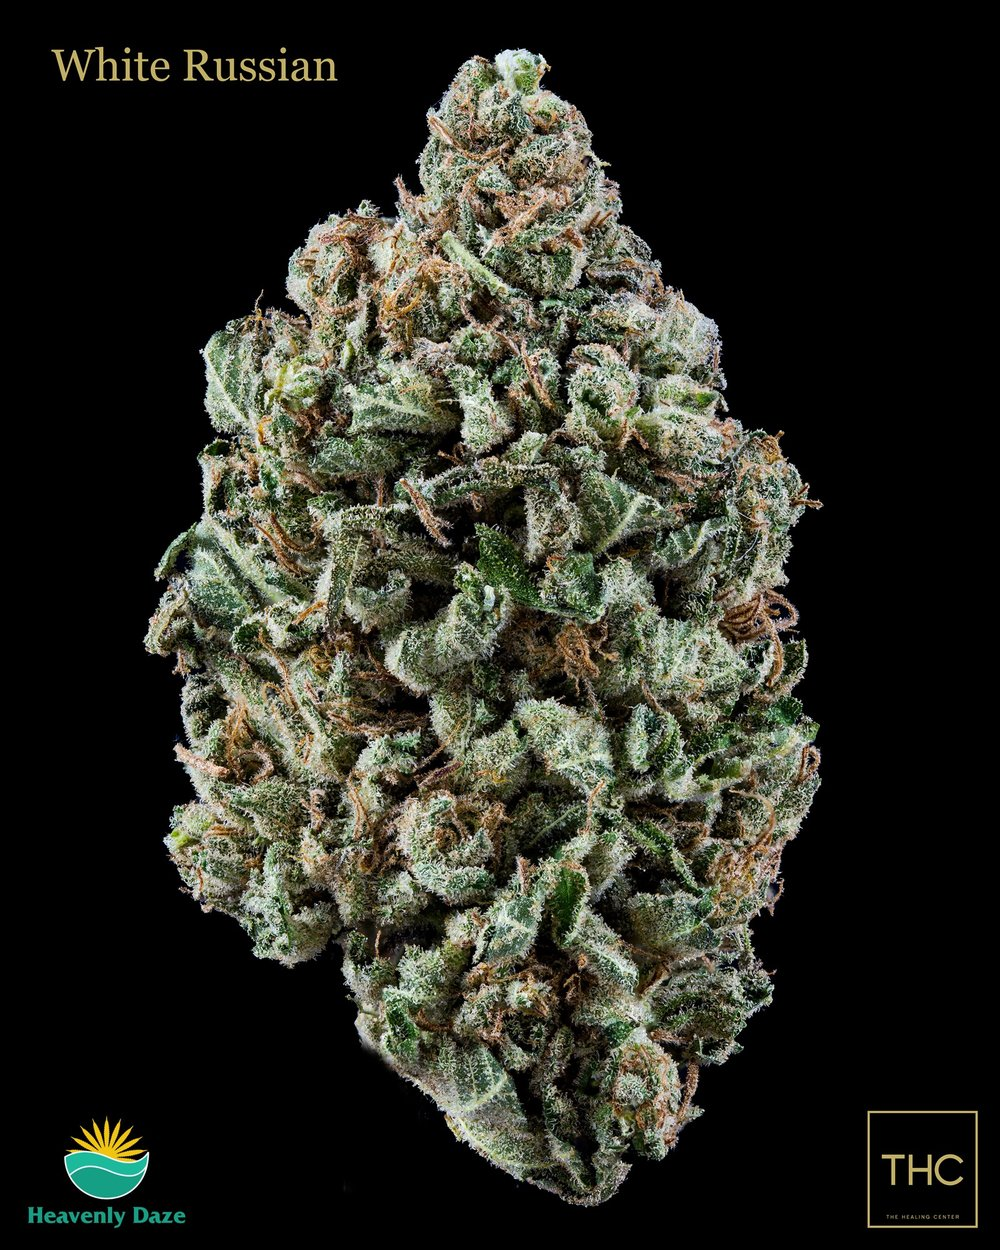 White Russian Heavenly Daze THC b.jpg